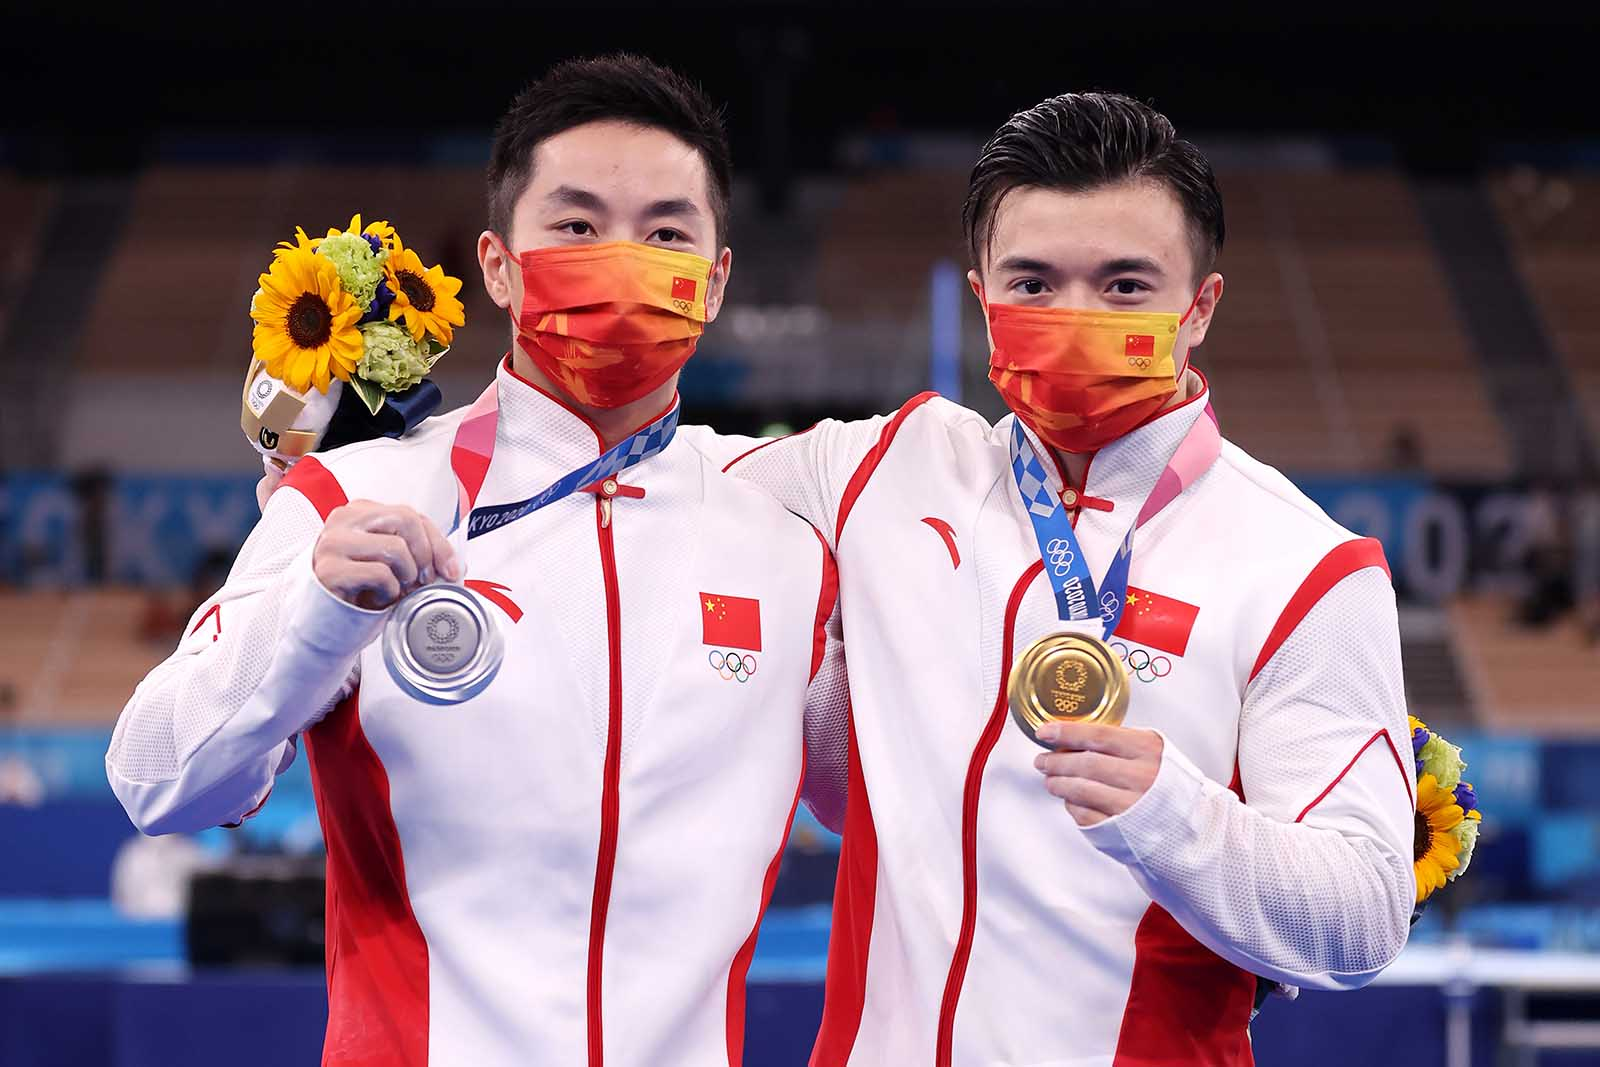 You Hao, left, and Liu Yang of Team China display their medals following the men's rings competition on August 2.